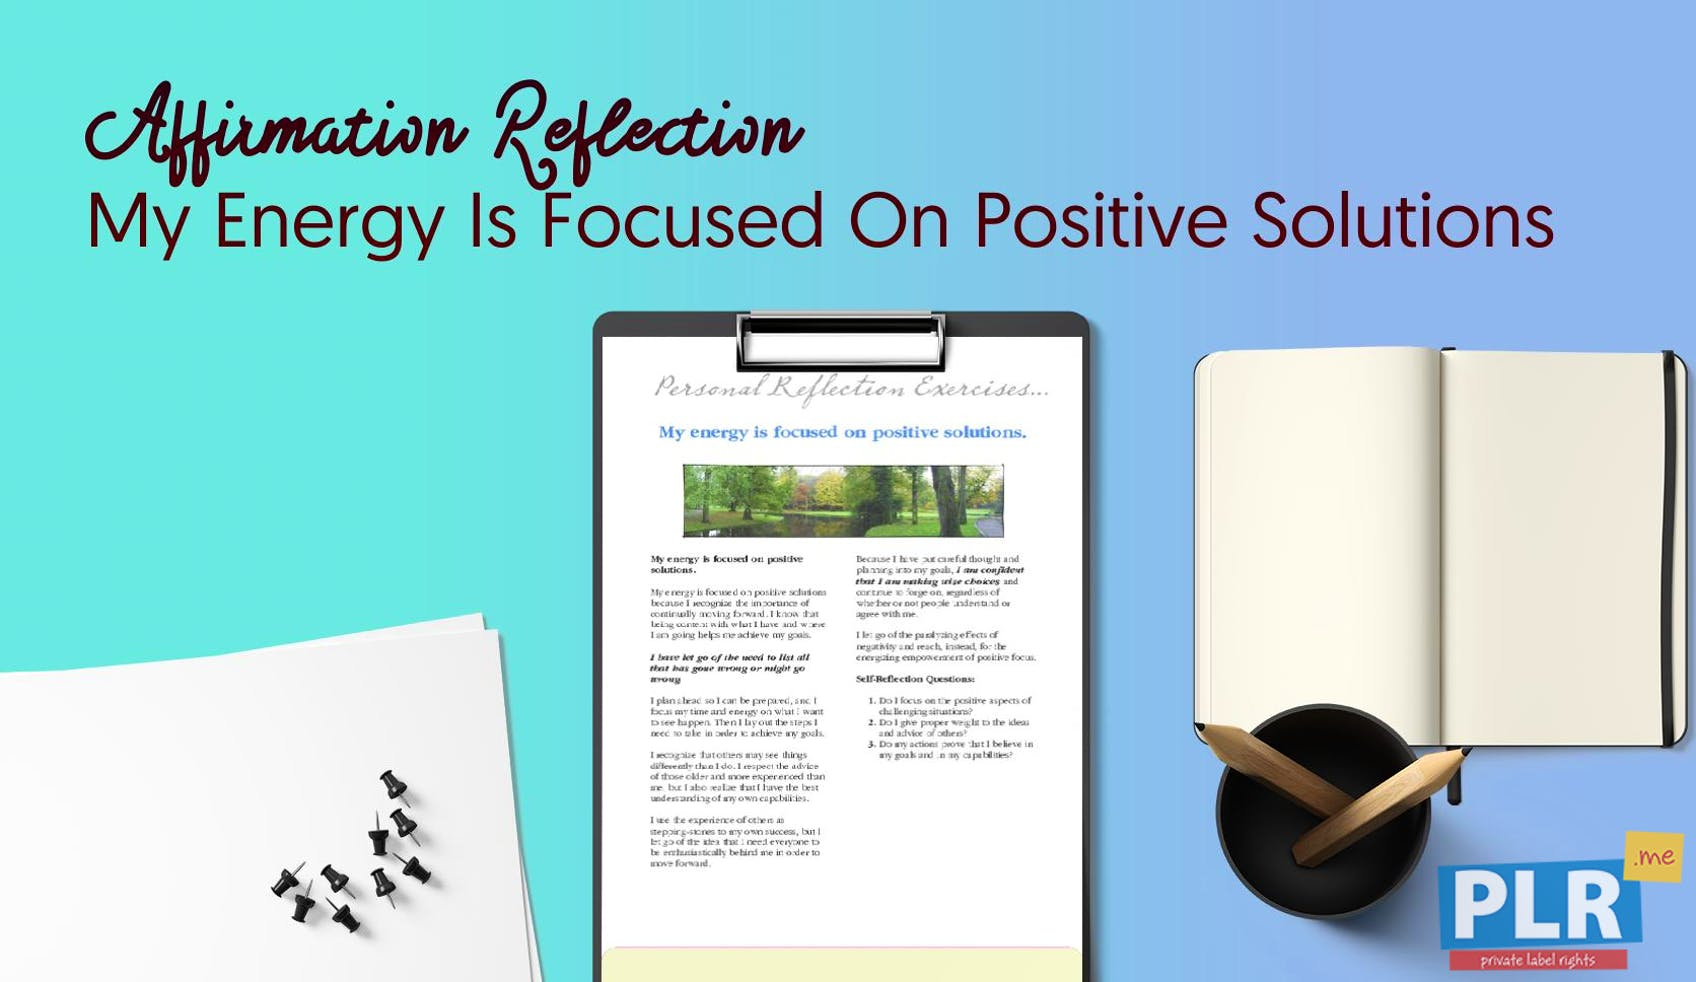 My Energy Is Focused On Positive Solutions